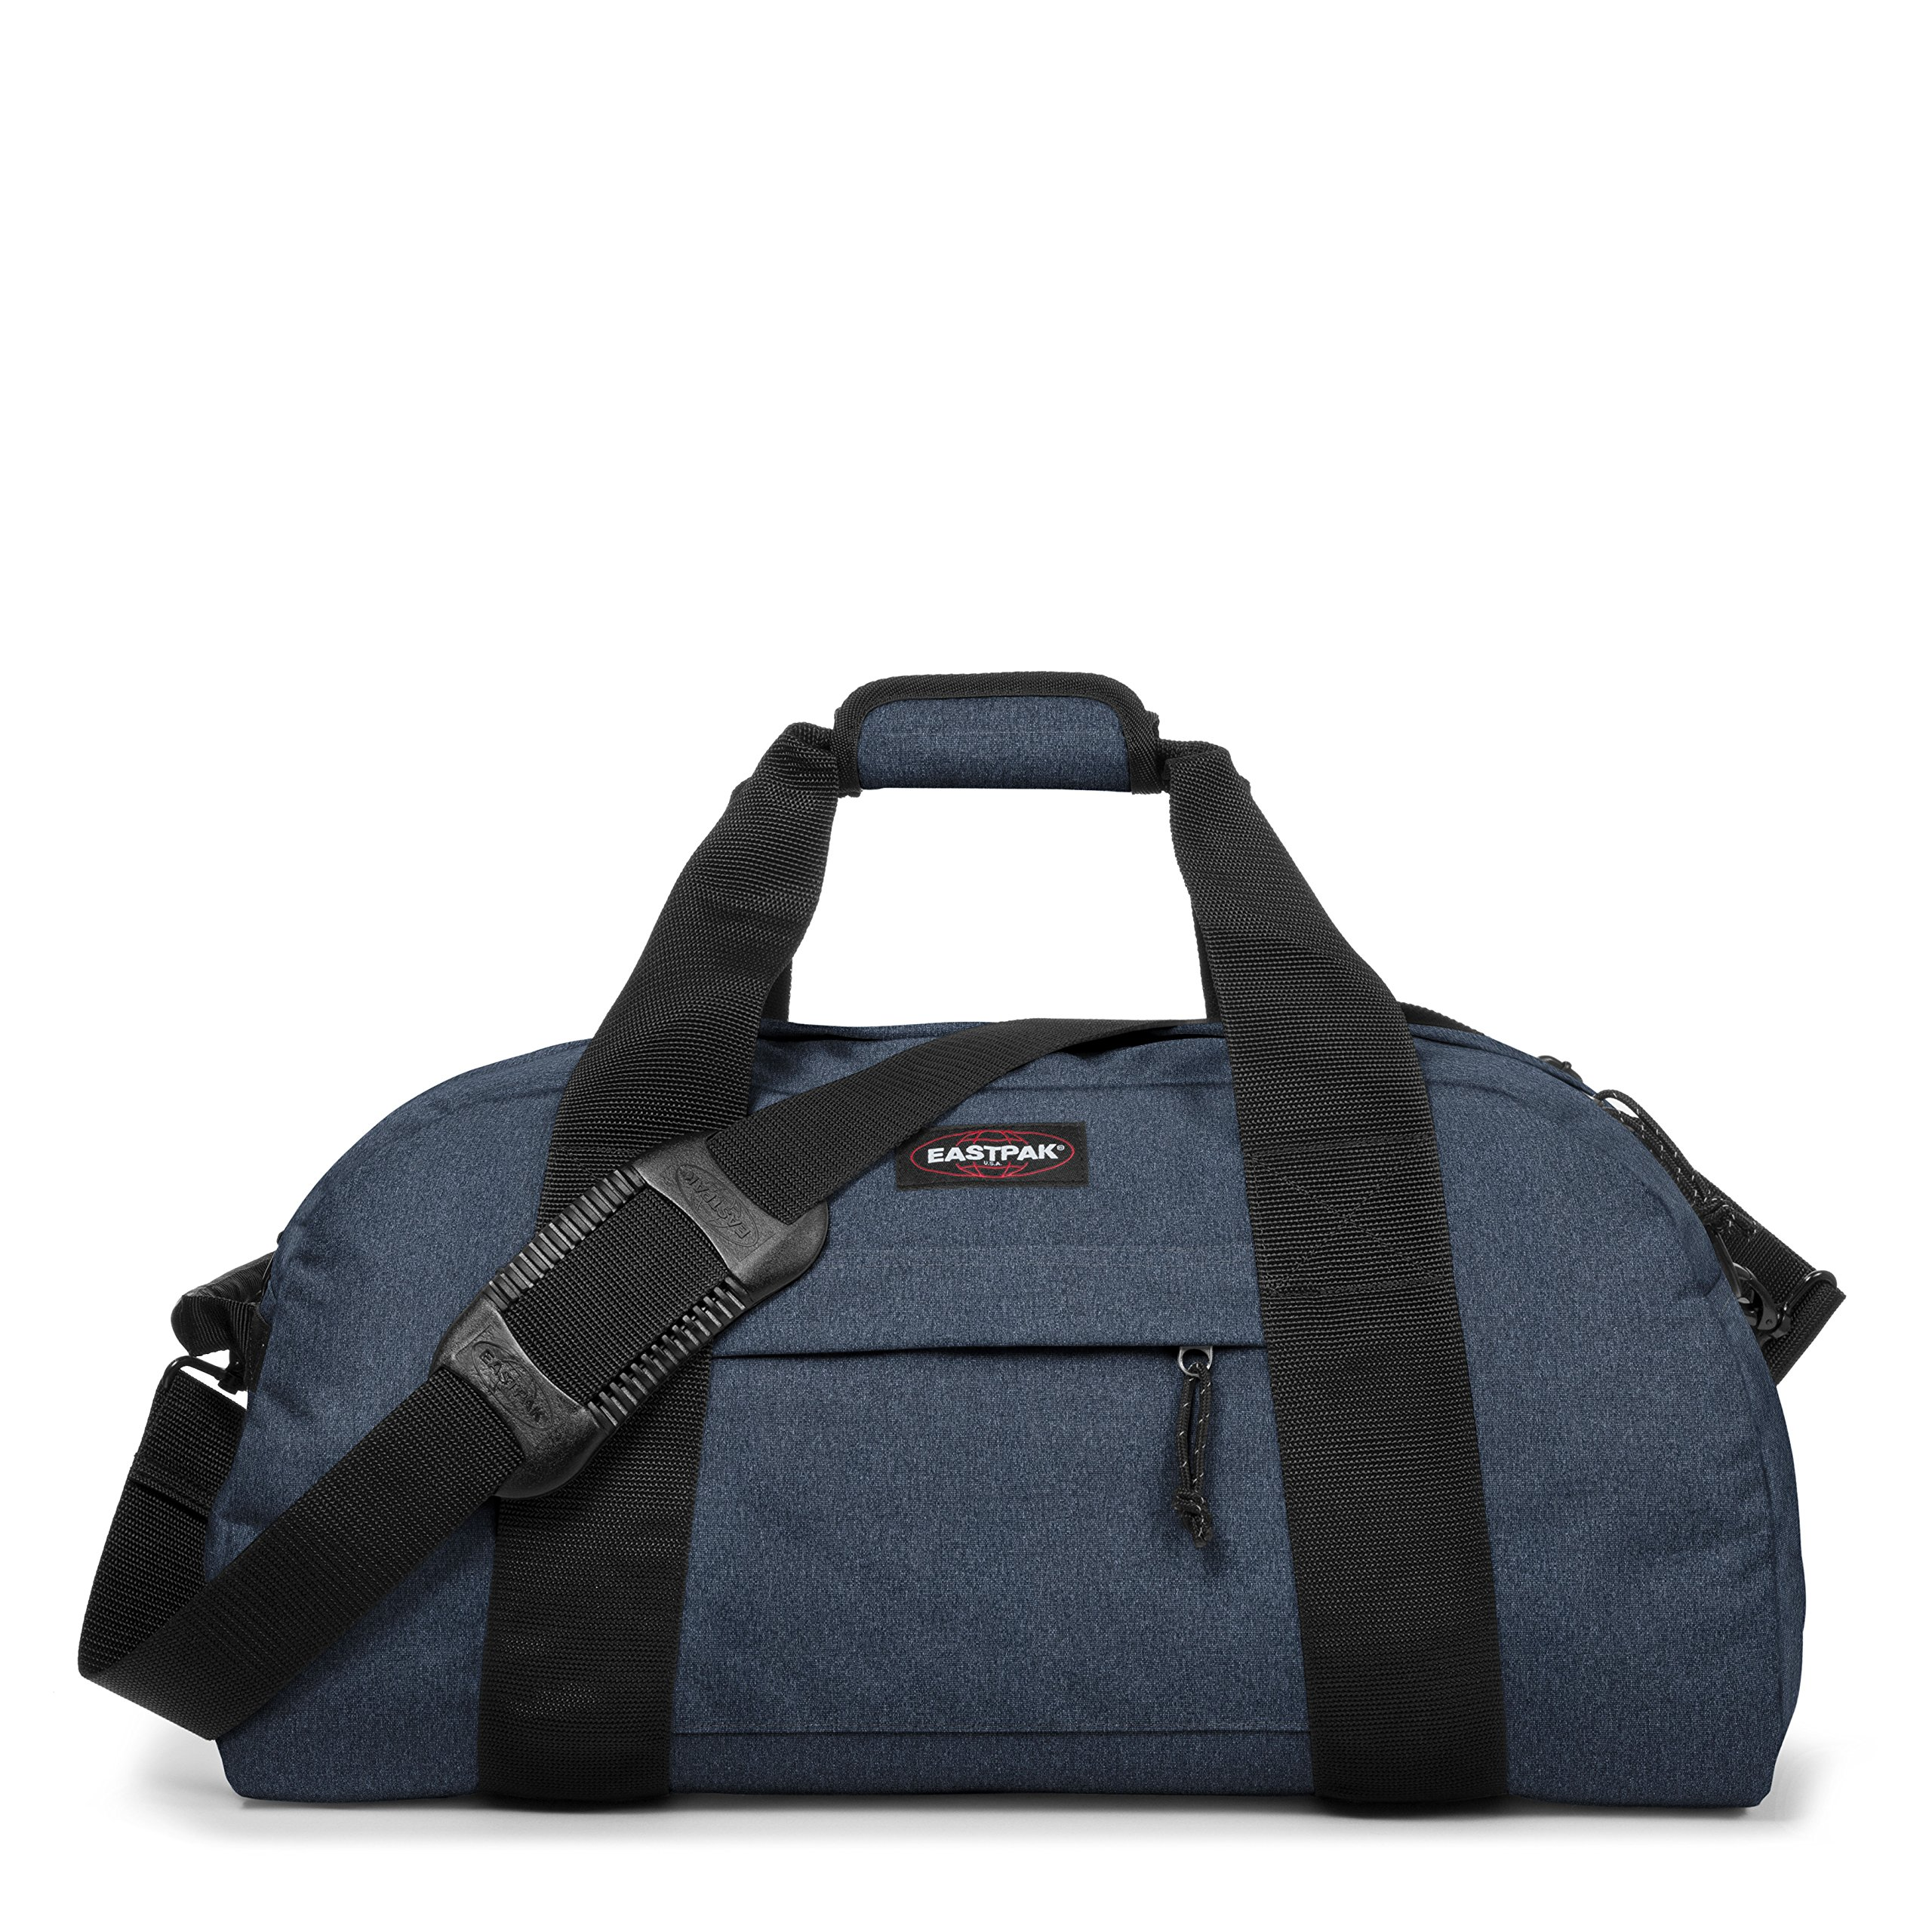 competitive price 5d7ed 95866 Eastpak Station Sac de voyage, 62 cm, 57 L, Bleu (Double Denim)